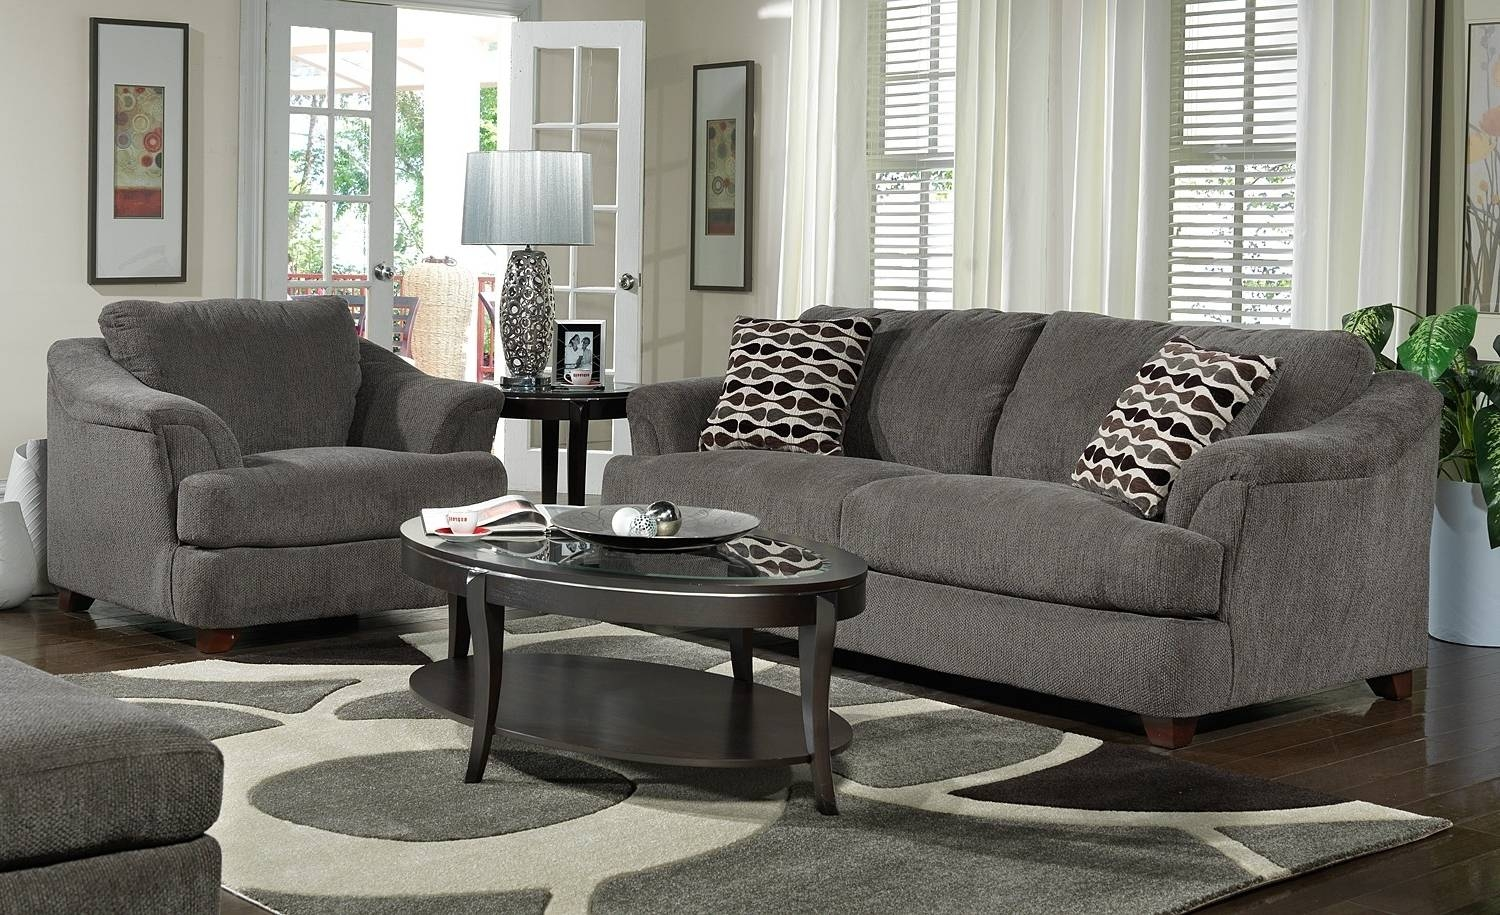 Chairs: Astonishing Gray Living Room Chairs Gray Tufted Chair Pertaining To Grey Sofa Chairs (Photo 6 of 30)